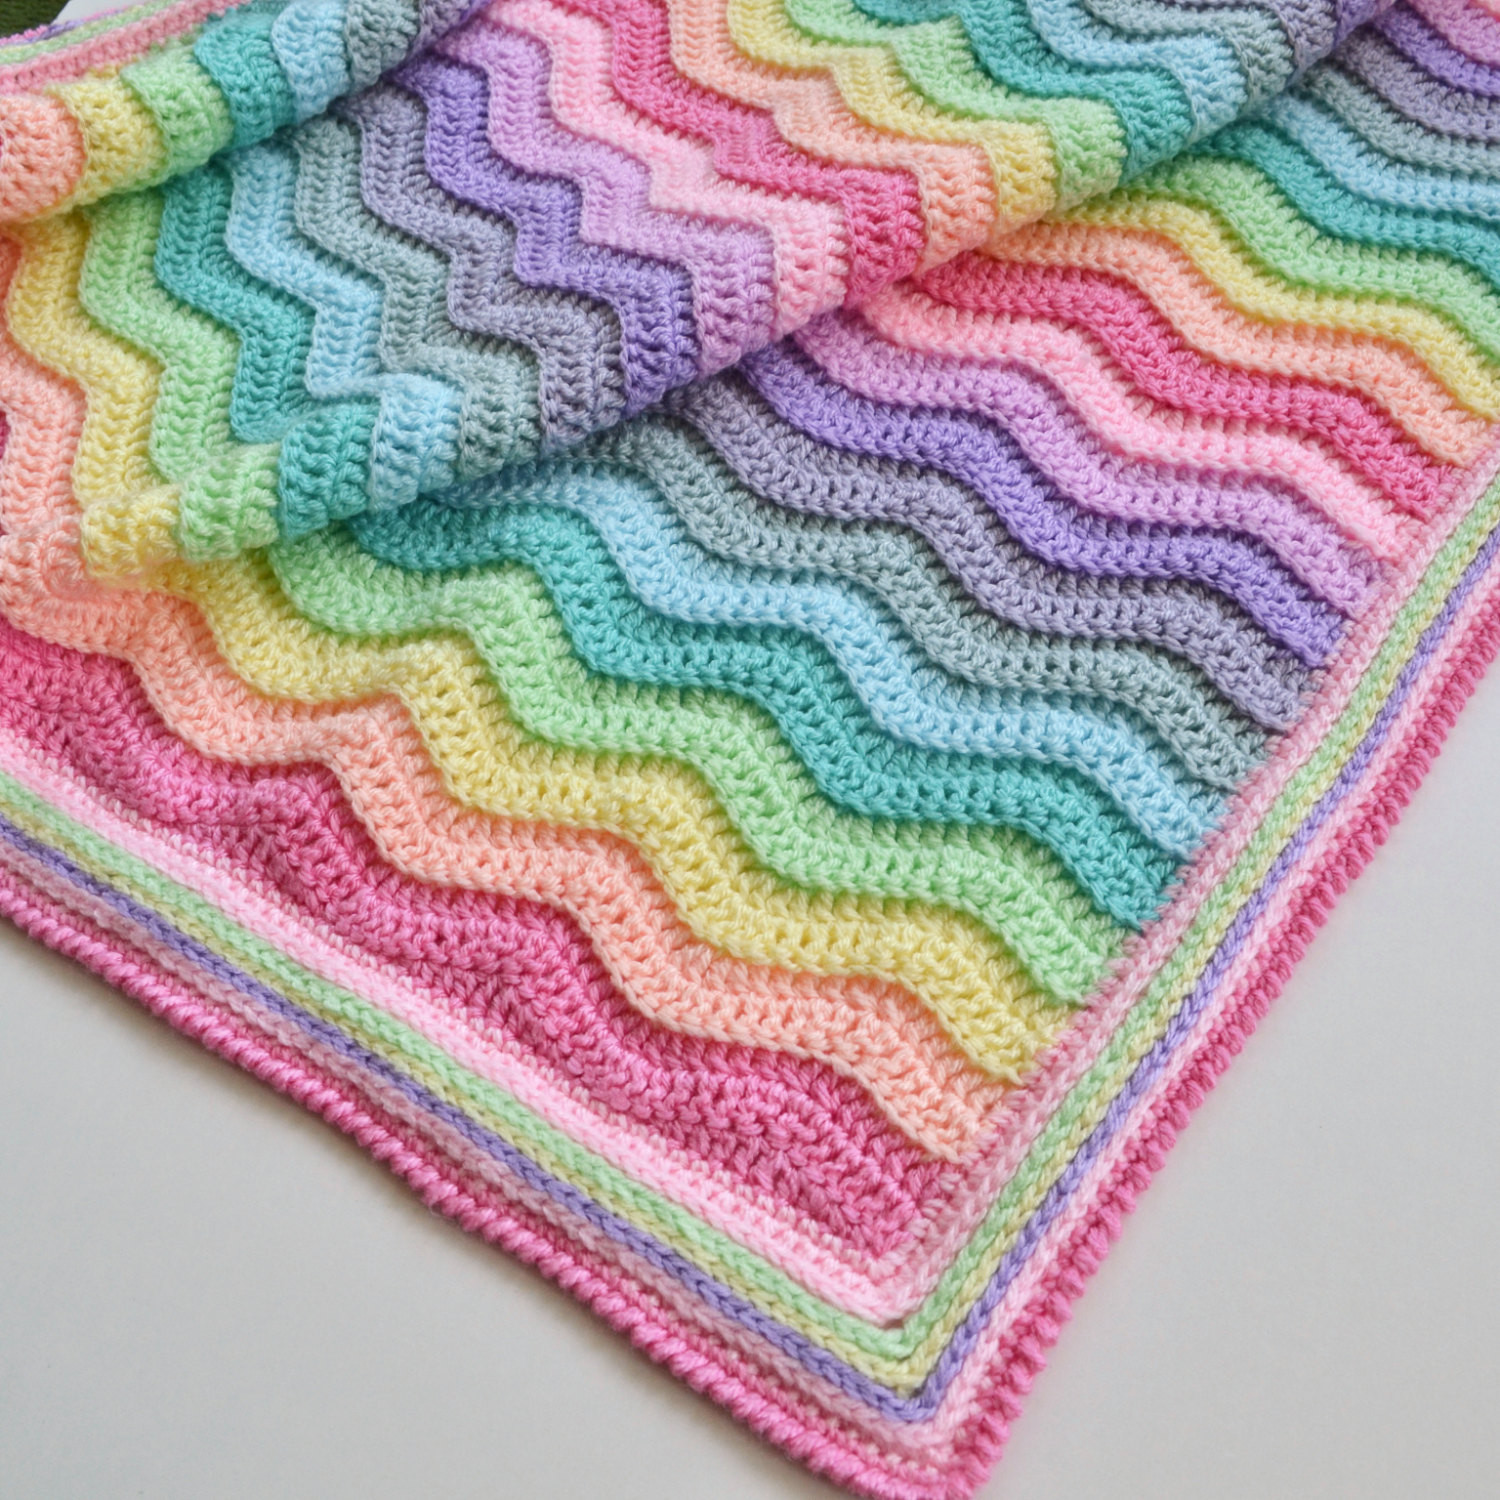 Rainbow Baby Blanket New Crochet Ripple Blanket Rainbow Blanket Afghan Baby Of Charming 42 Ideas Rainbow Baby Blanket